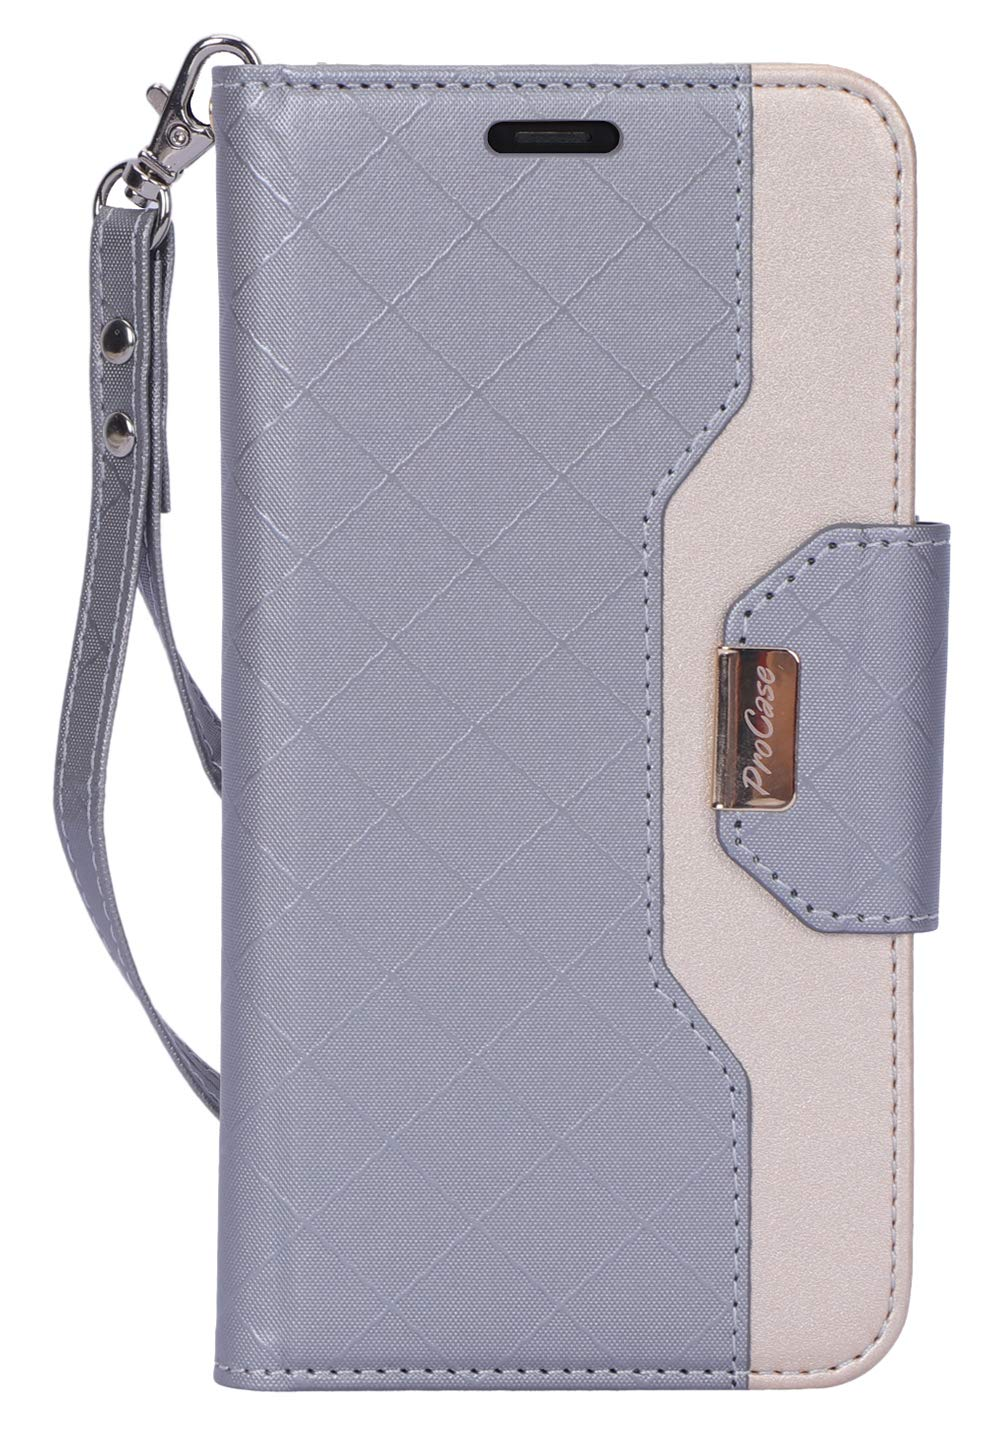 ProCase iPhone 11 Pro Max Wallet Case for Women Girls, Folding Flip Case with Card Holder Wrist Strap for iPhone 11 Pro Max 6.5 Inch 2019 –Grey